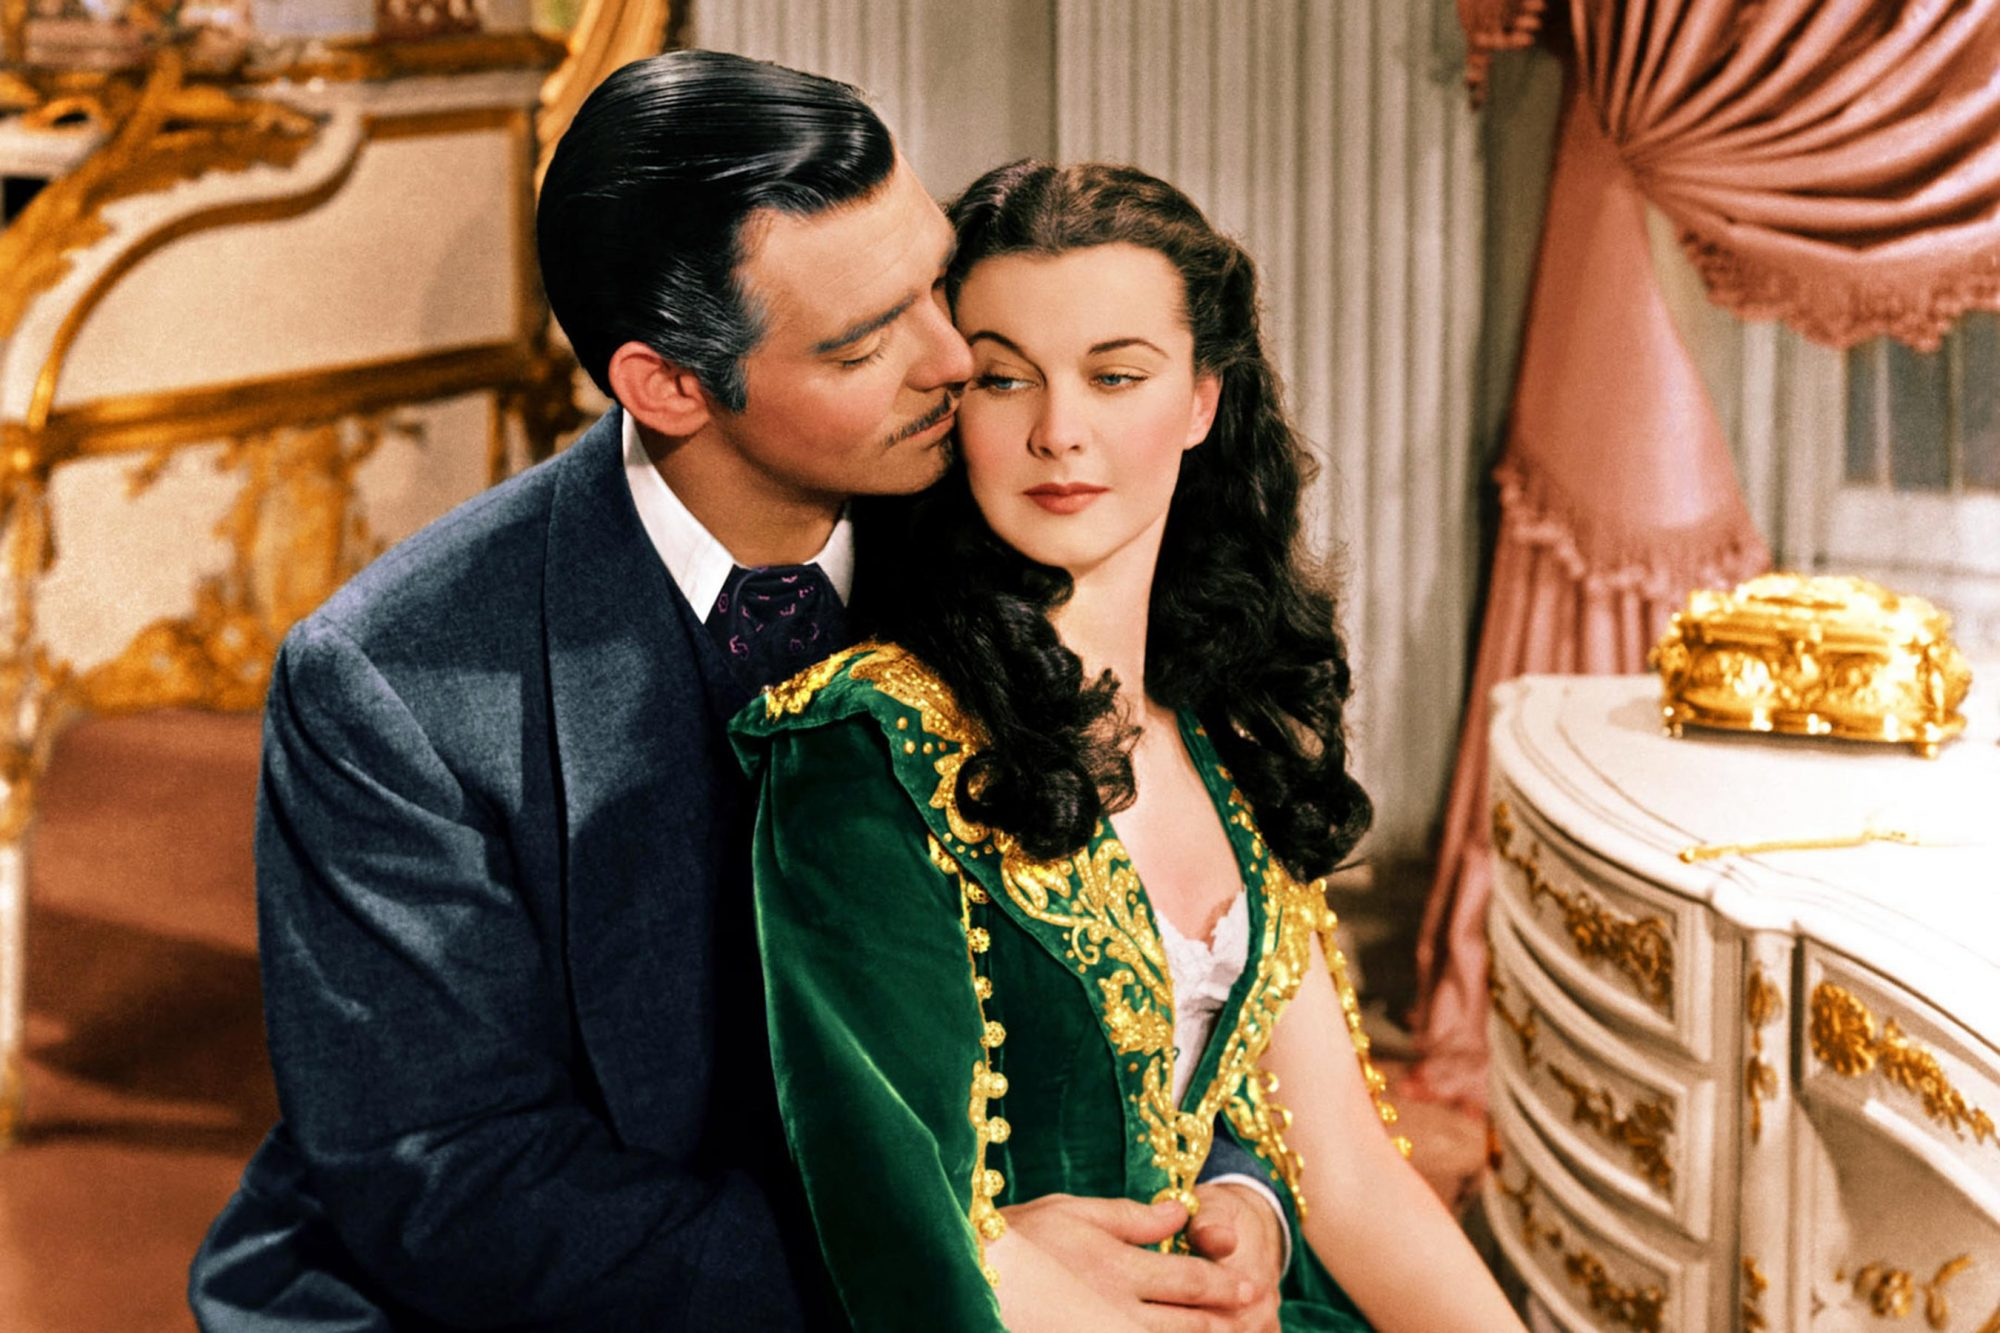 Gone With the Wind returning to theaters for 80th anniversary gone-with-the-wind